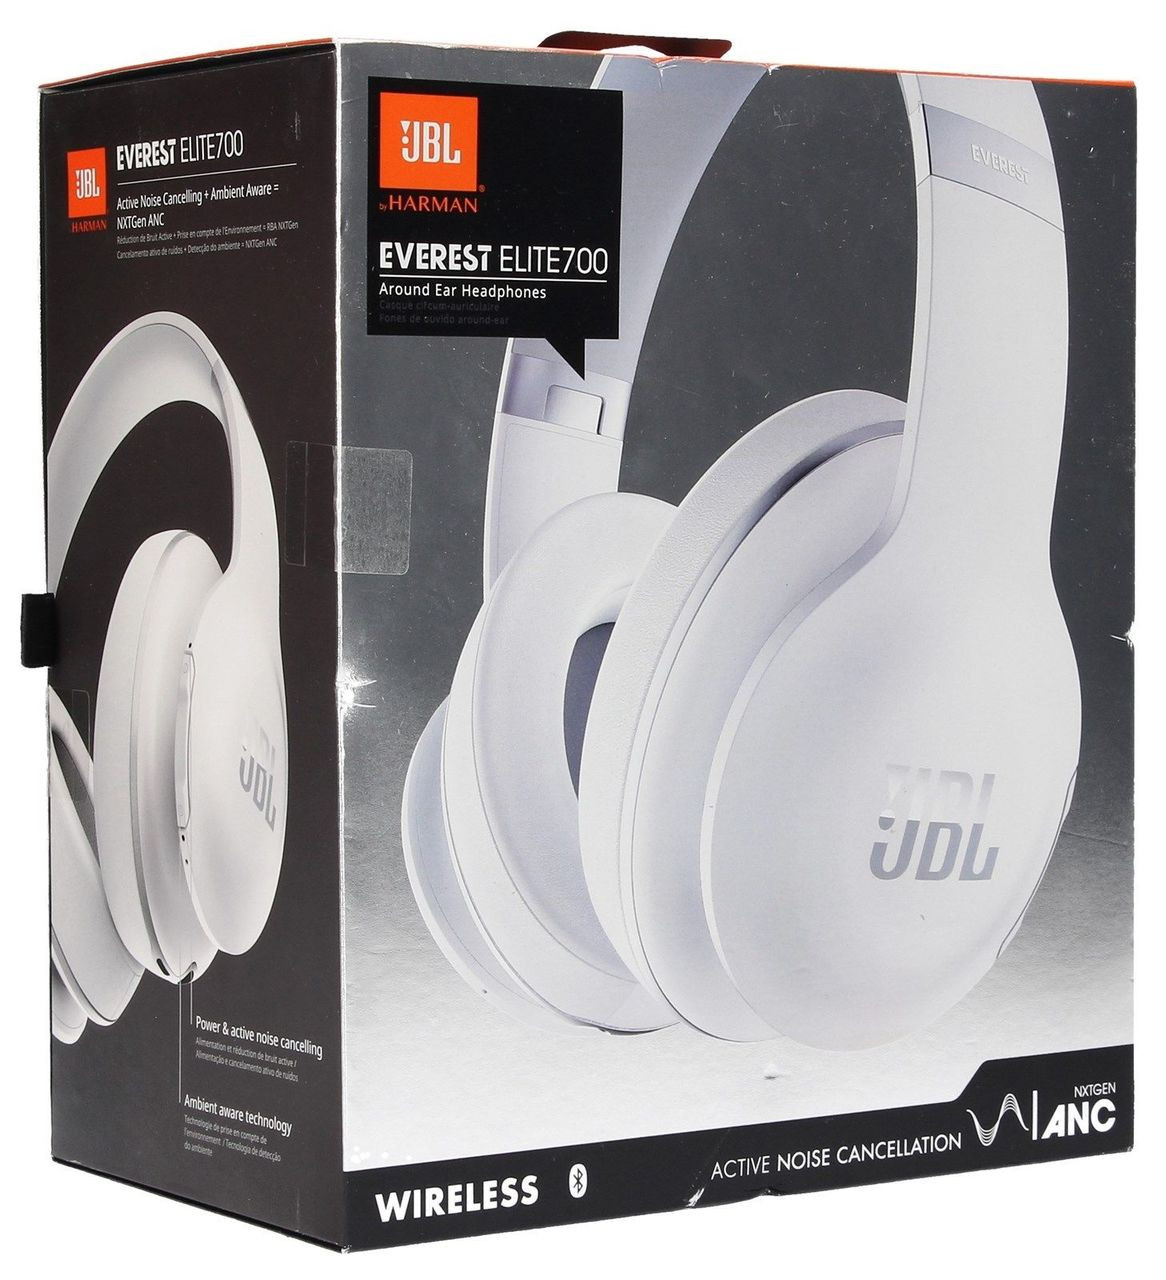 74cfa5c0466 JBL_Everest_700_elite_Around-Ear_Wireless_Bluetooth_Headphone_white_pic1__79469.1504722802.jpg?c=2&imbypass=on